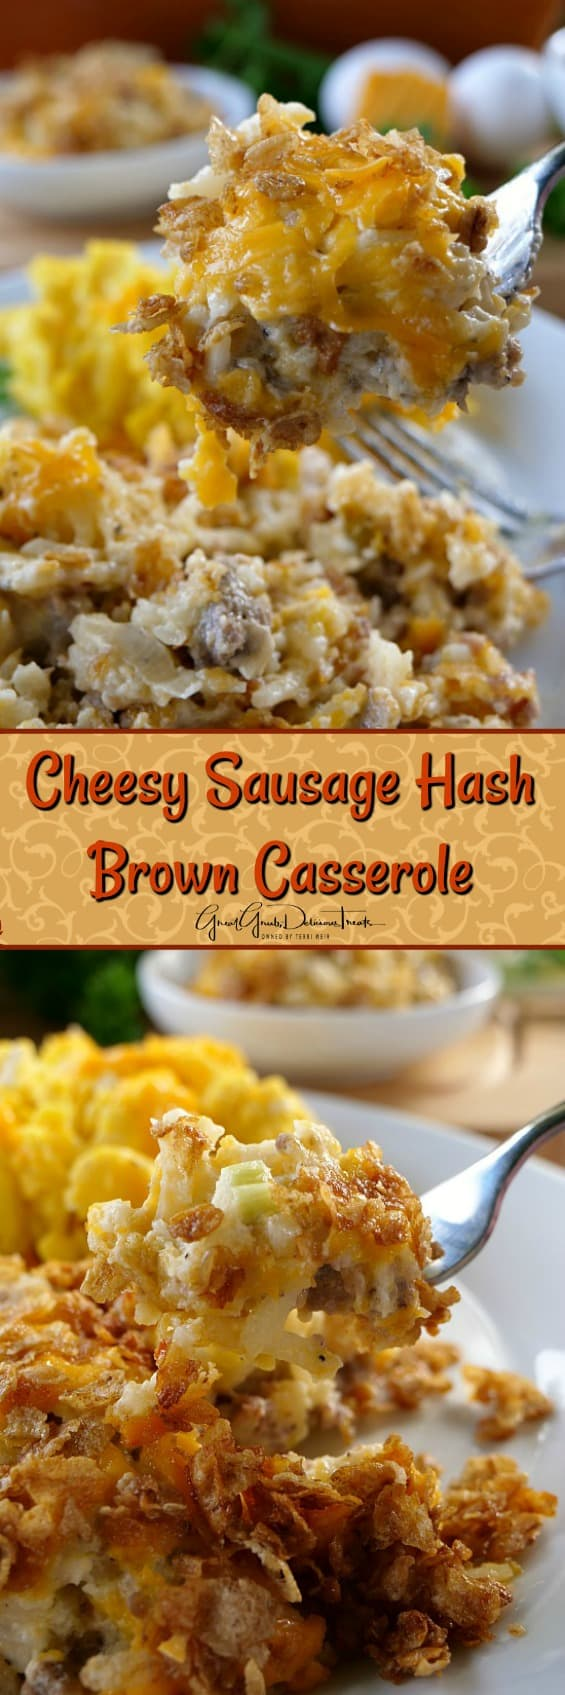 Cheesy Sausage Hash Brown Casserole